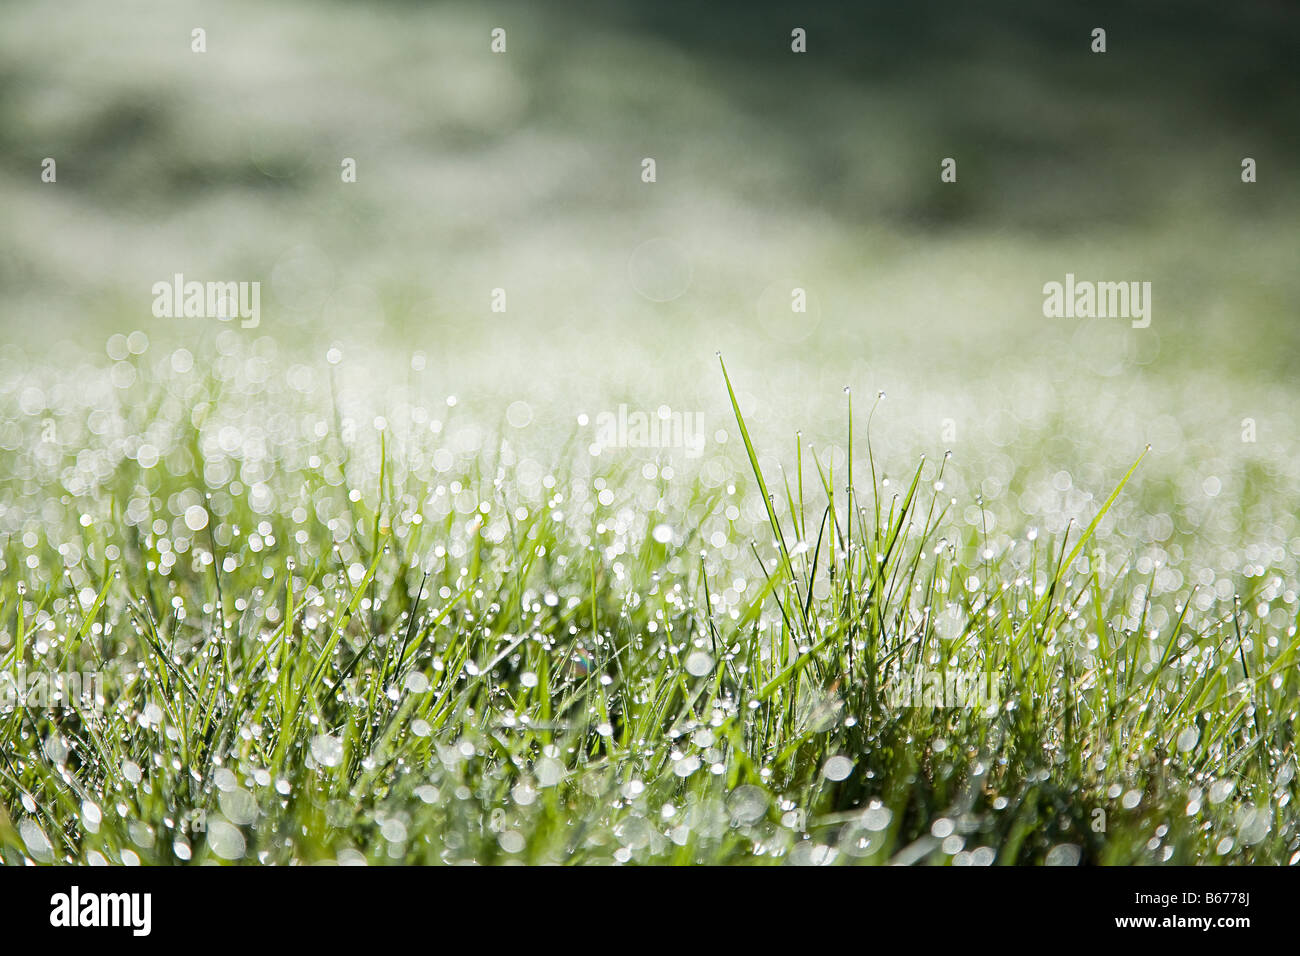 Close up of blades of grass - Stock Image